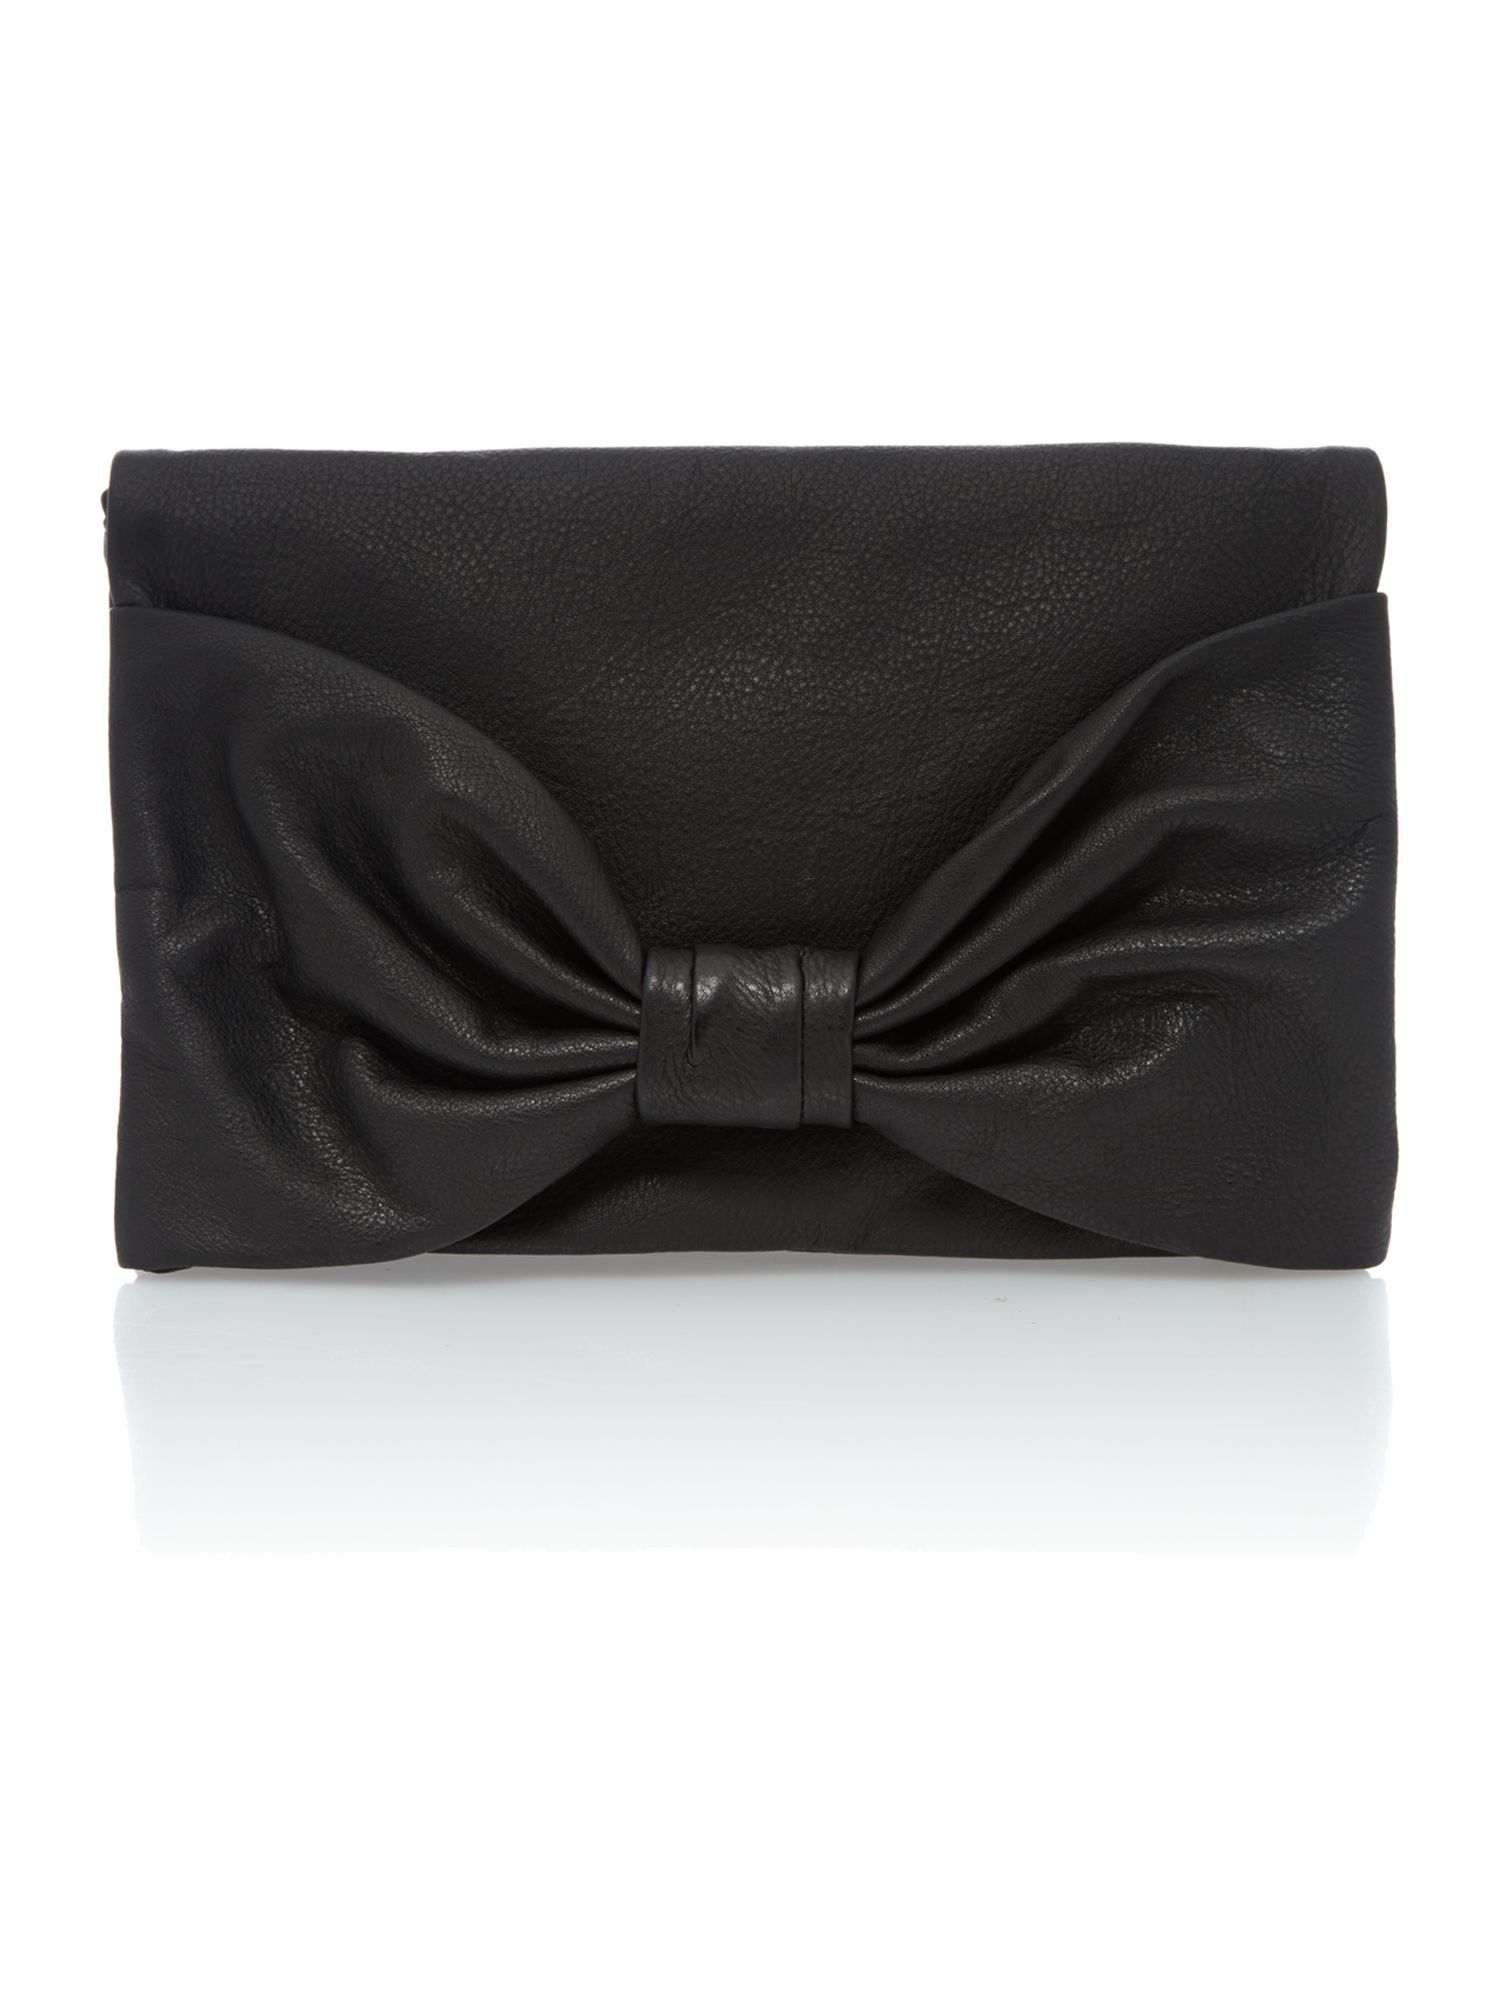 Small shoulder black cross body bag